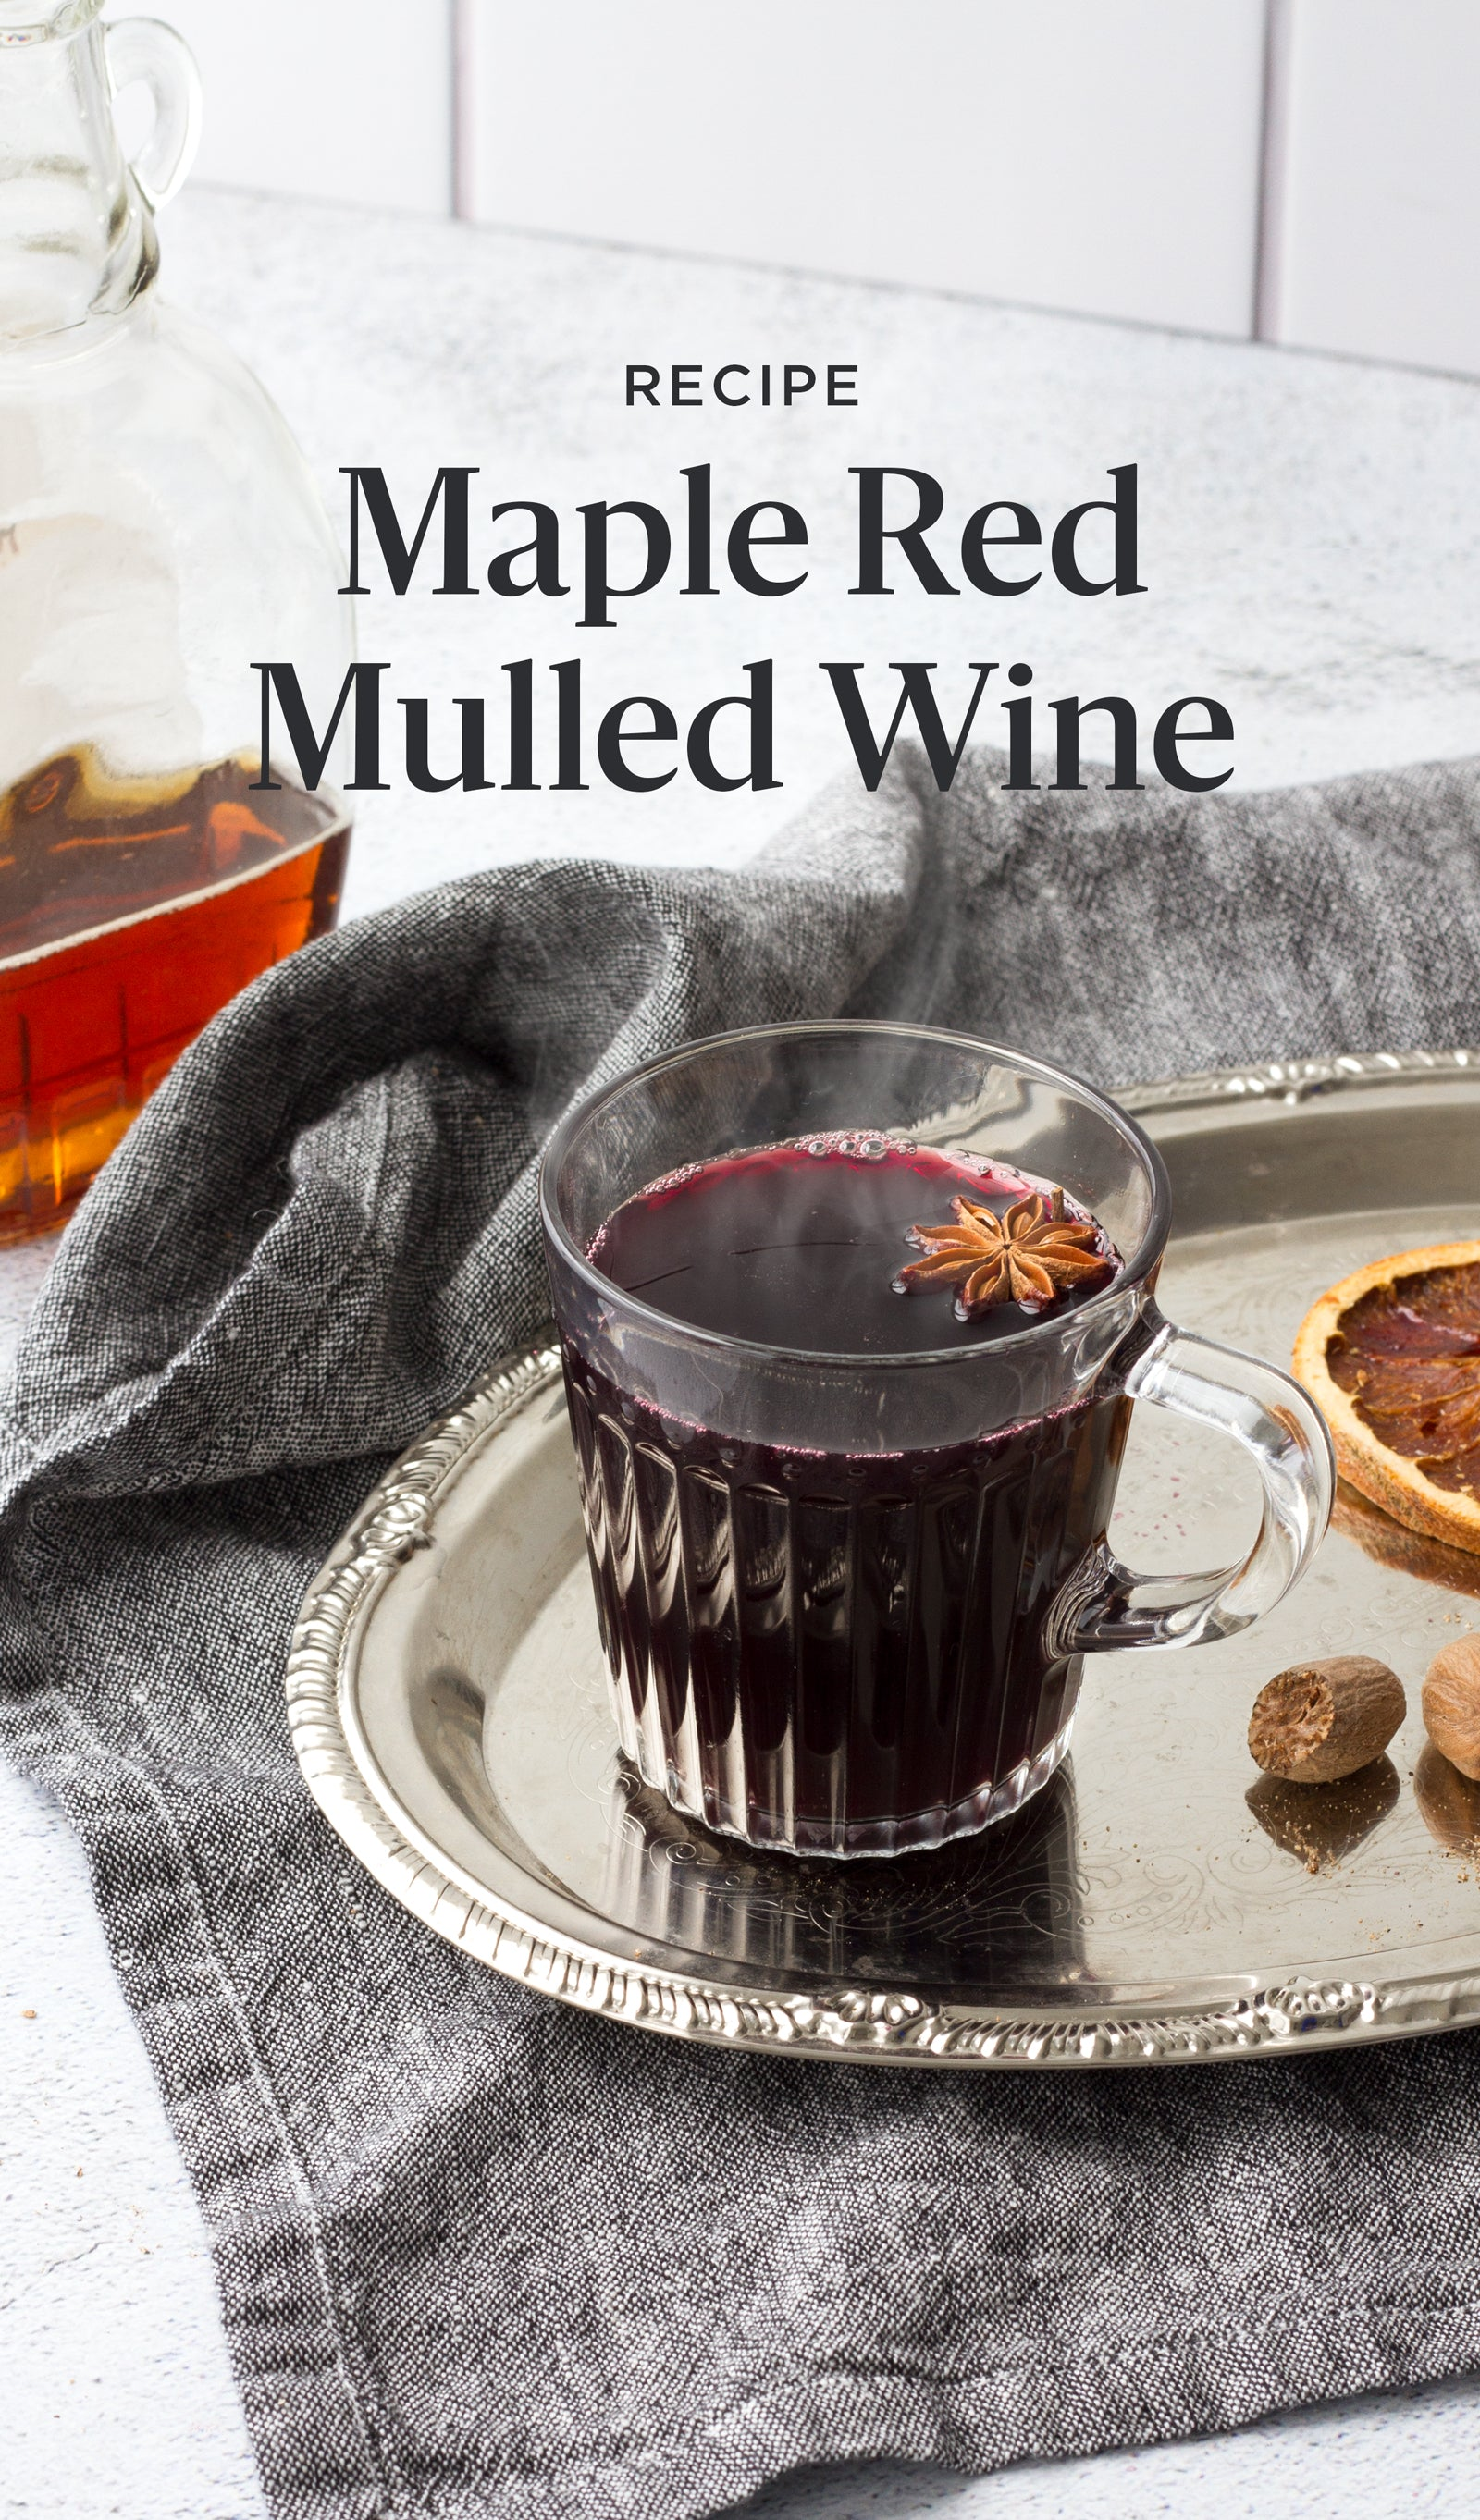 Maple red mulled wine in a mug, recipe for Pinterest